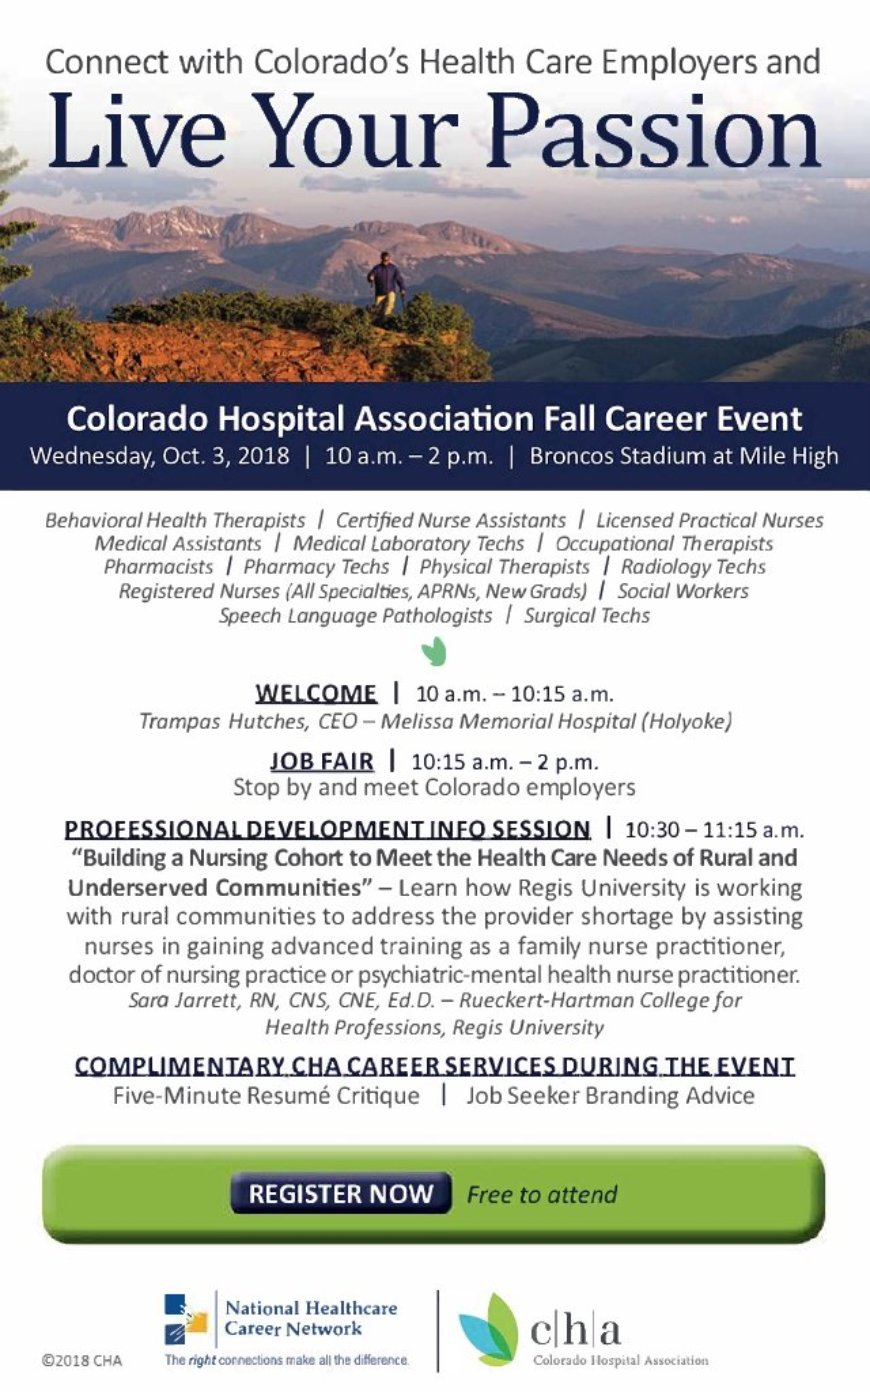 Colorado Hospital Association Fall Career Event